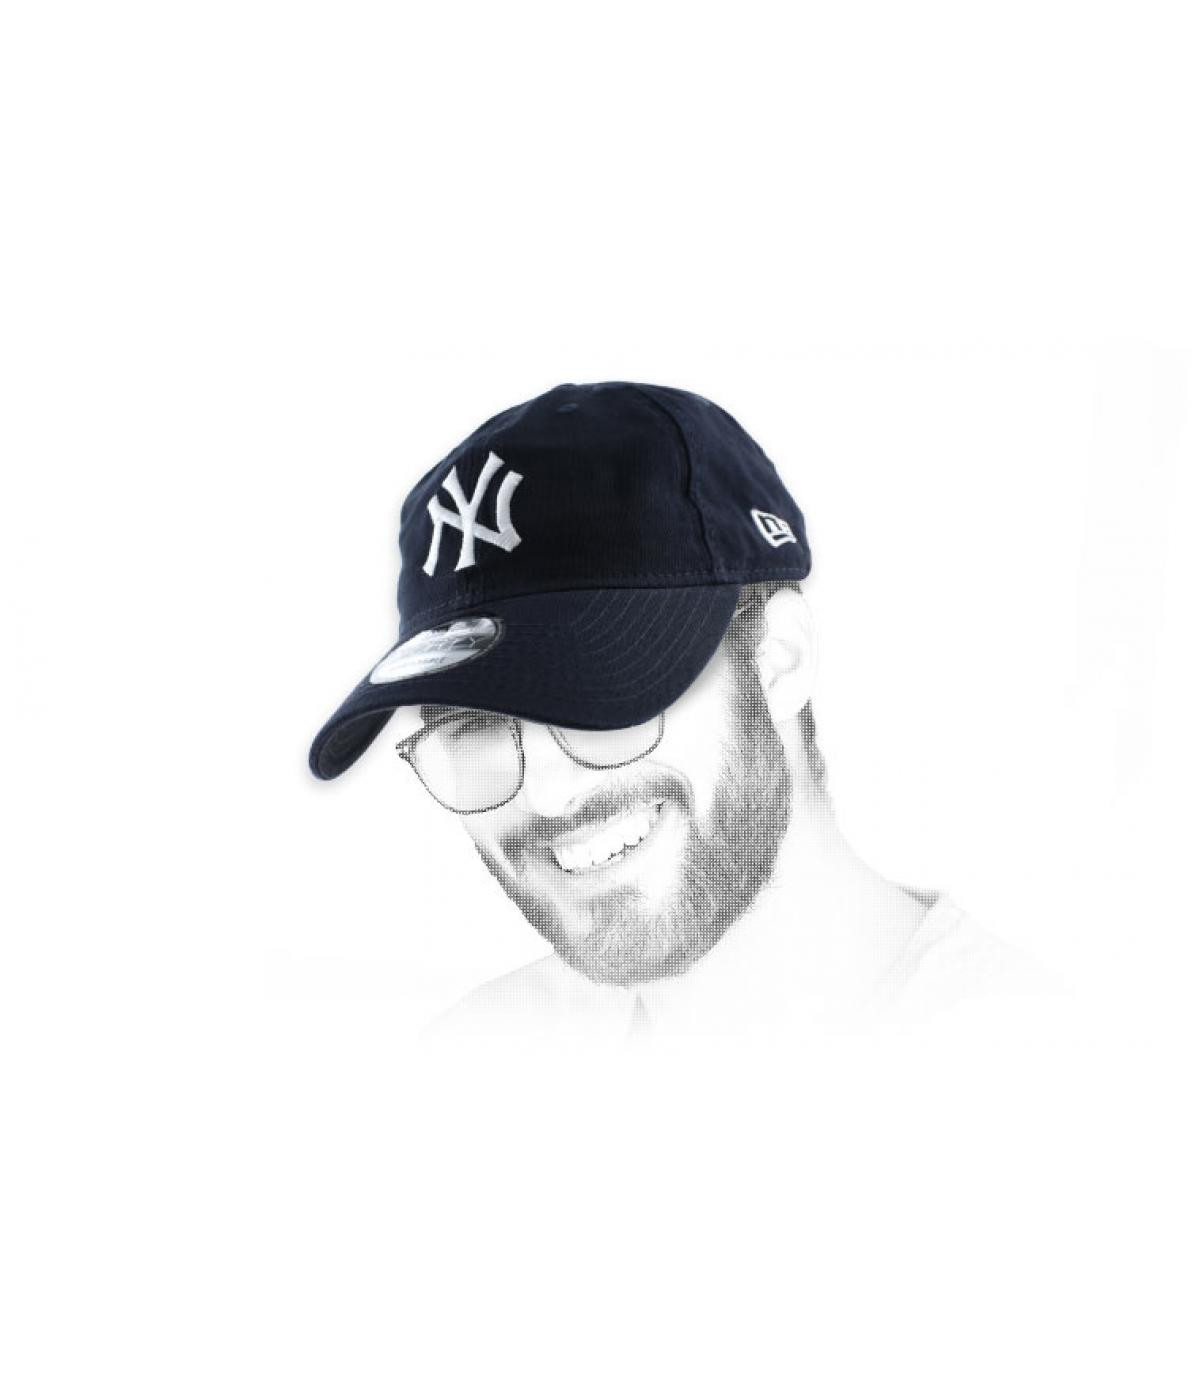 blue NY unstructured cap